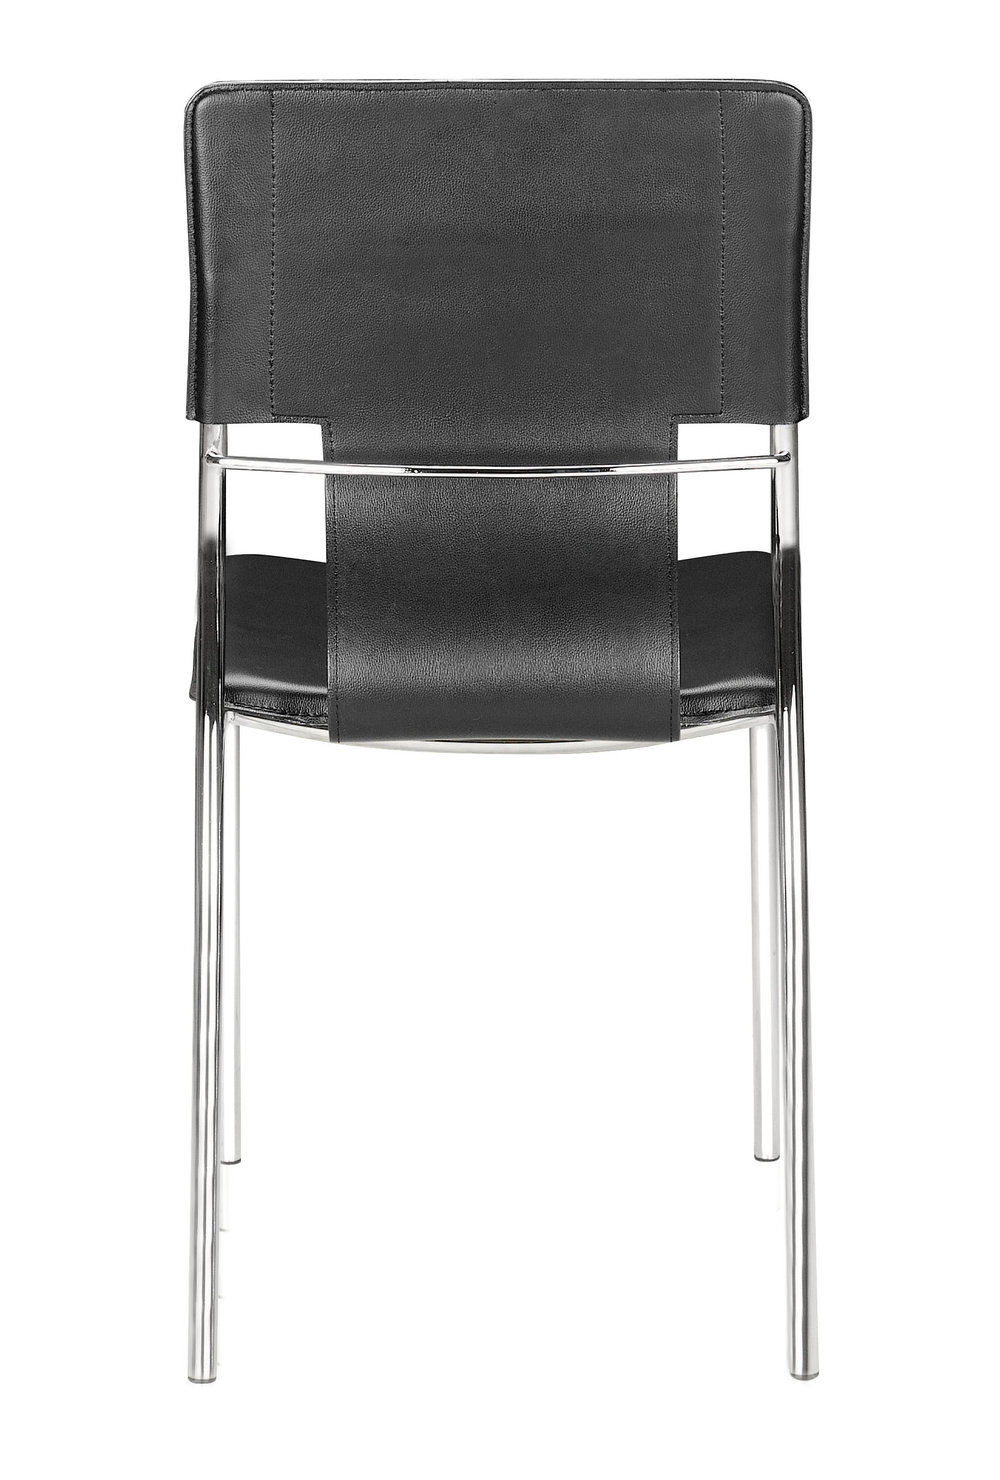 Zuo Modern Contemporary - Trafico Dining Chair - Set of 4 - Black